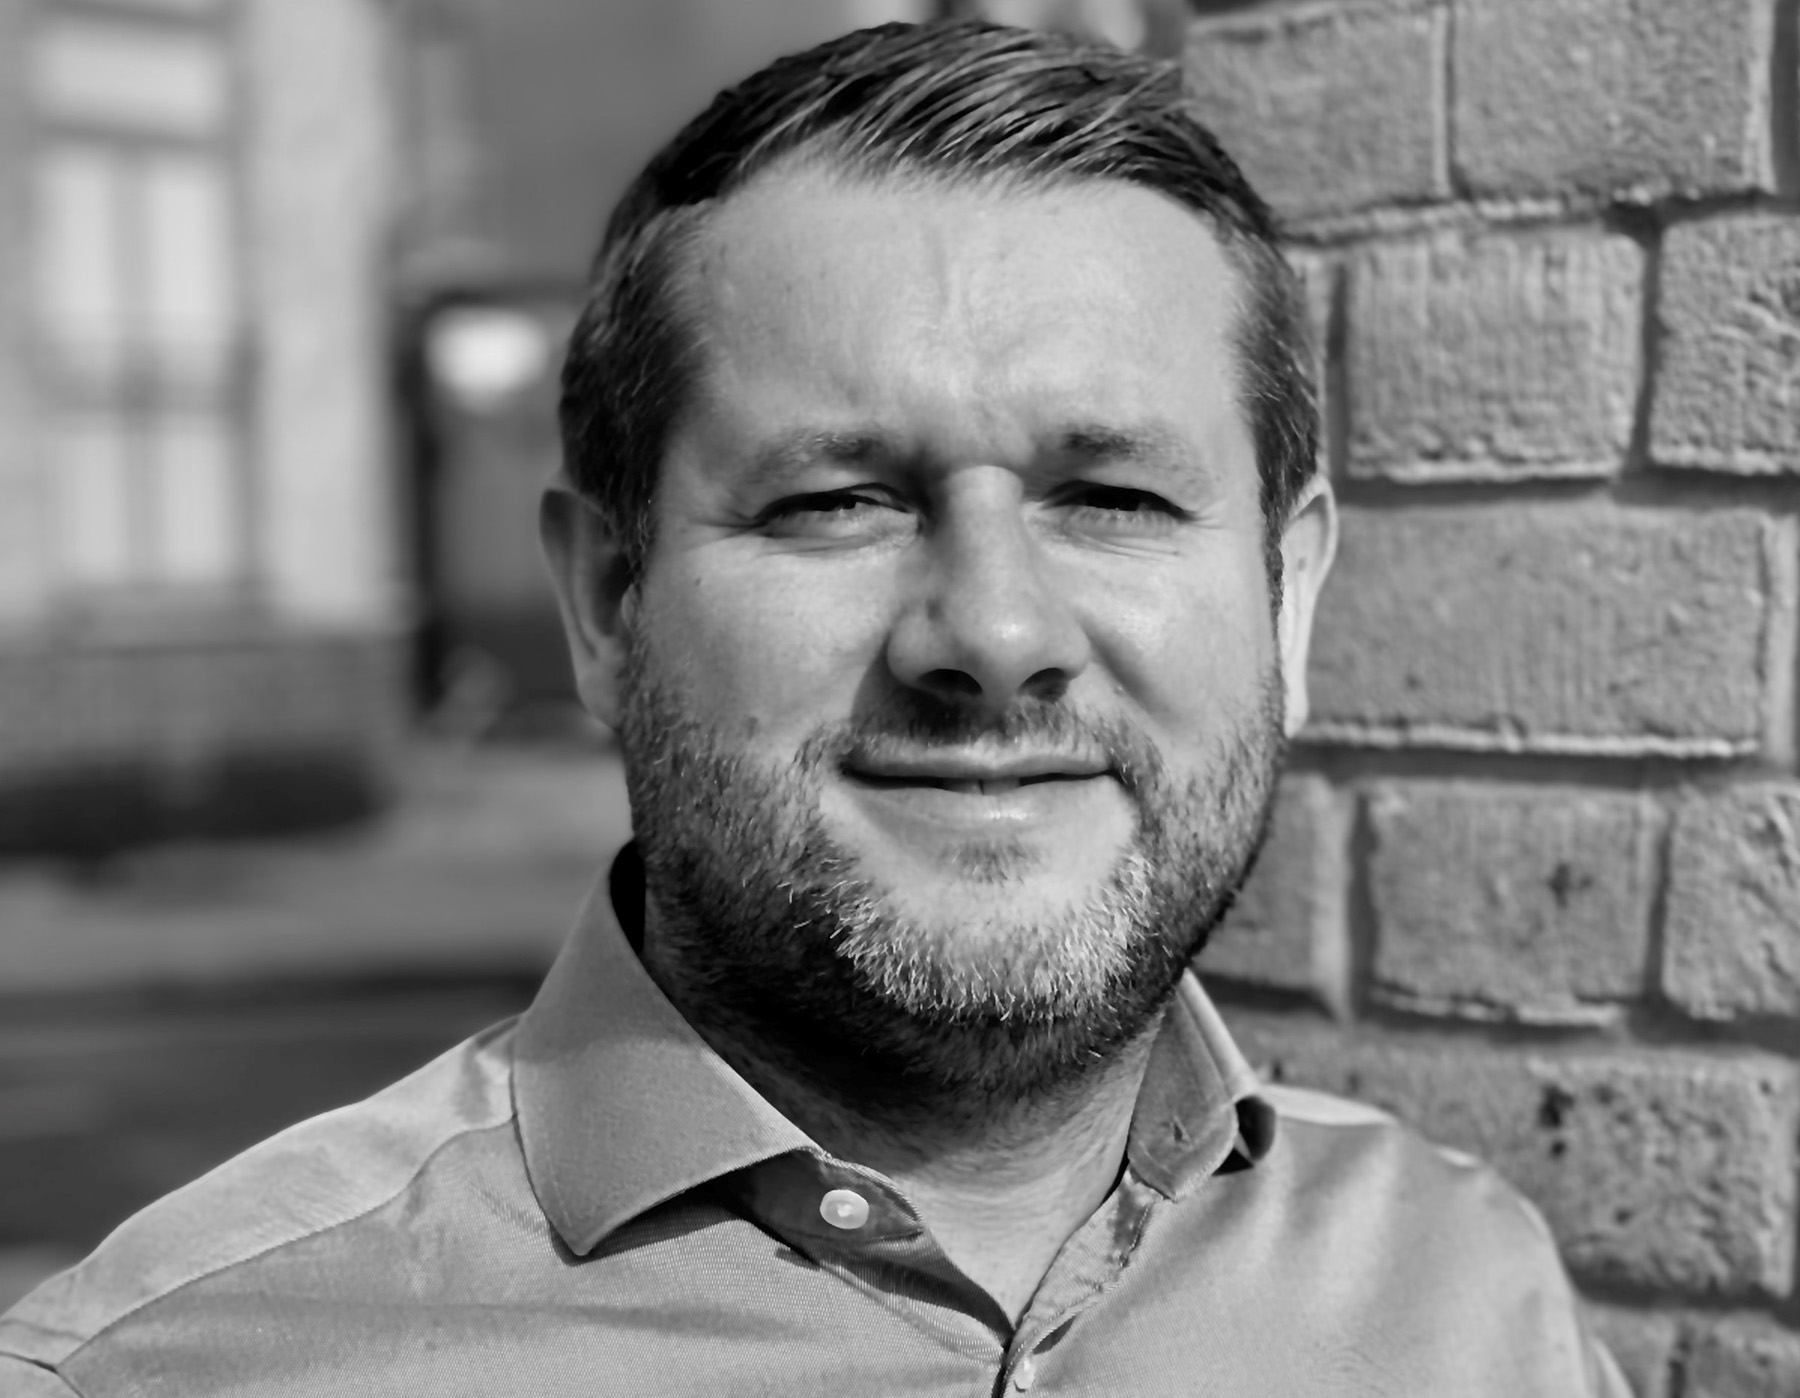 Gracewood Construction appoints new Commercial Manager - Jason Smith